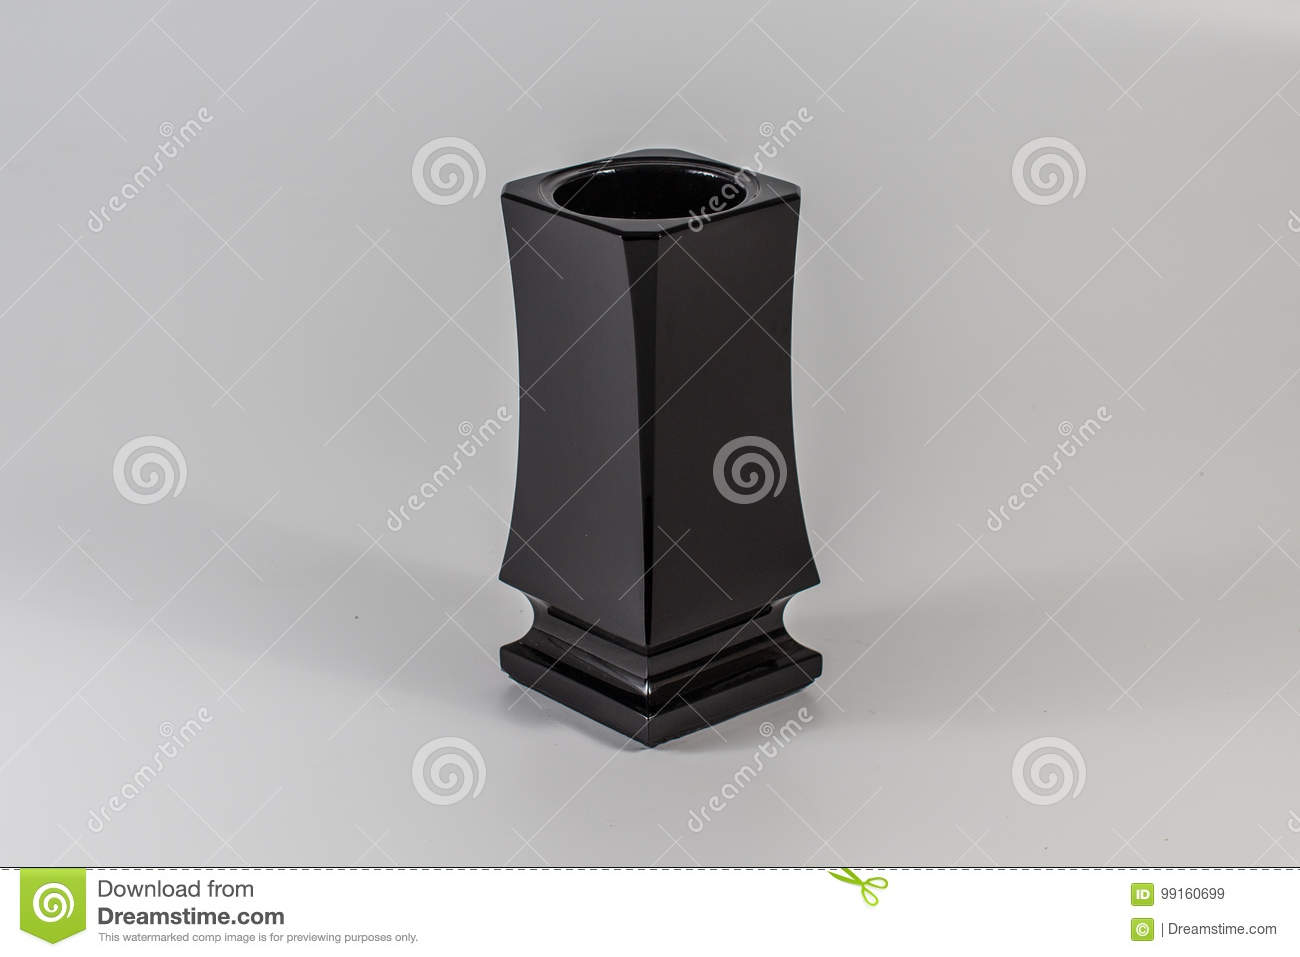 Dreamstime.com & Grave Flower Vase Made Of Stone Stock Image - Image of calmness ...